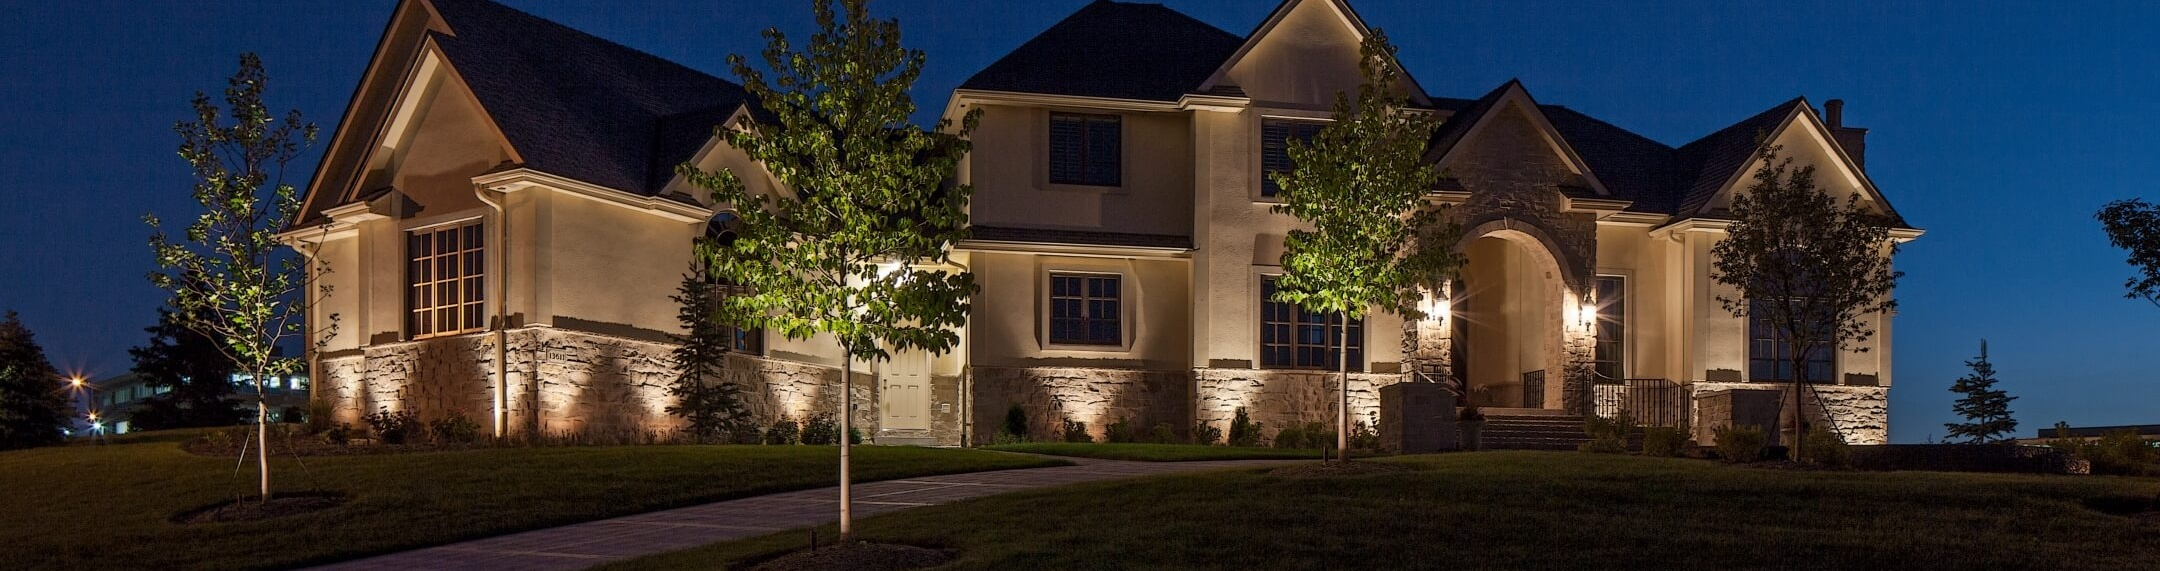 Landscape Lighting Before and After Photos